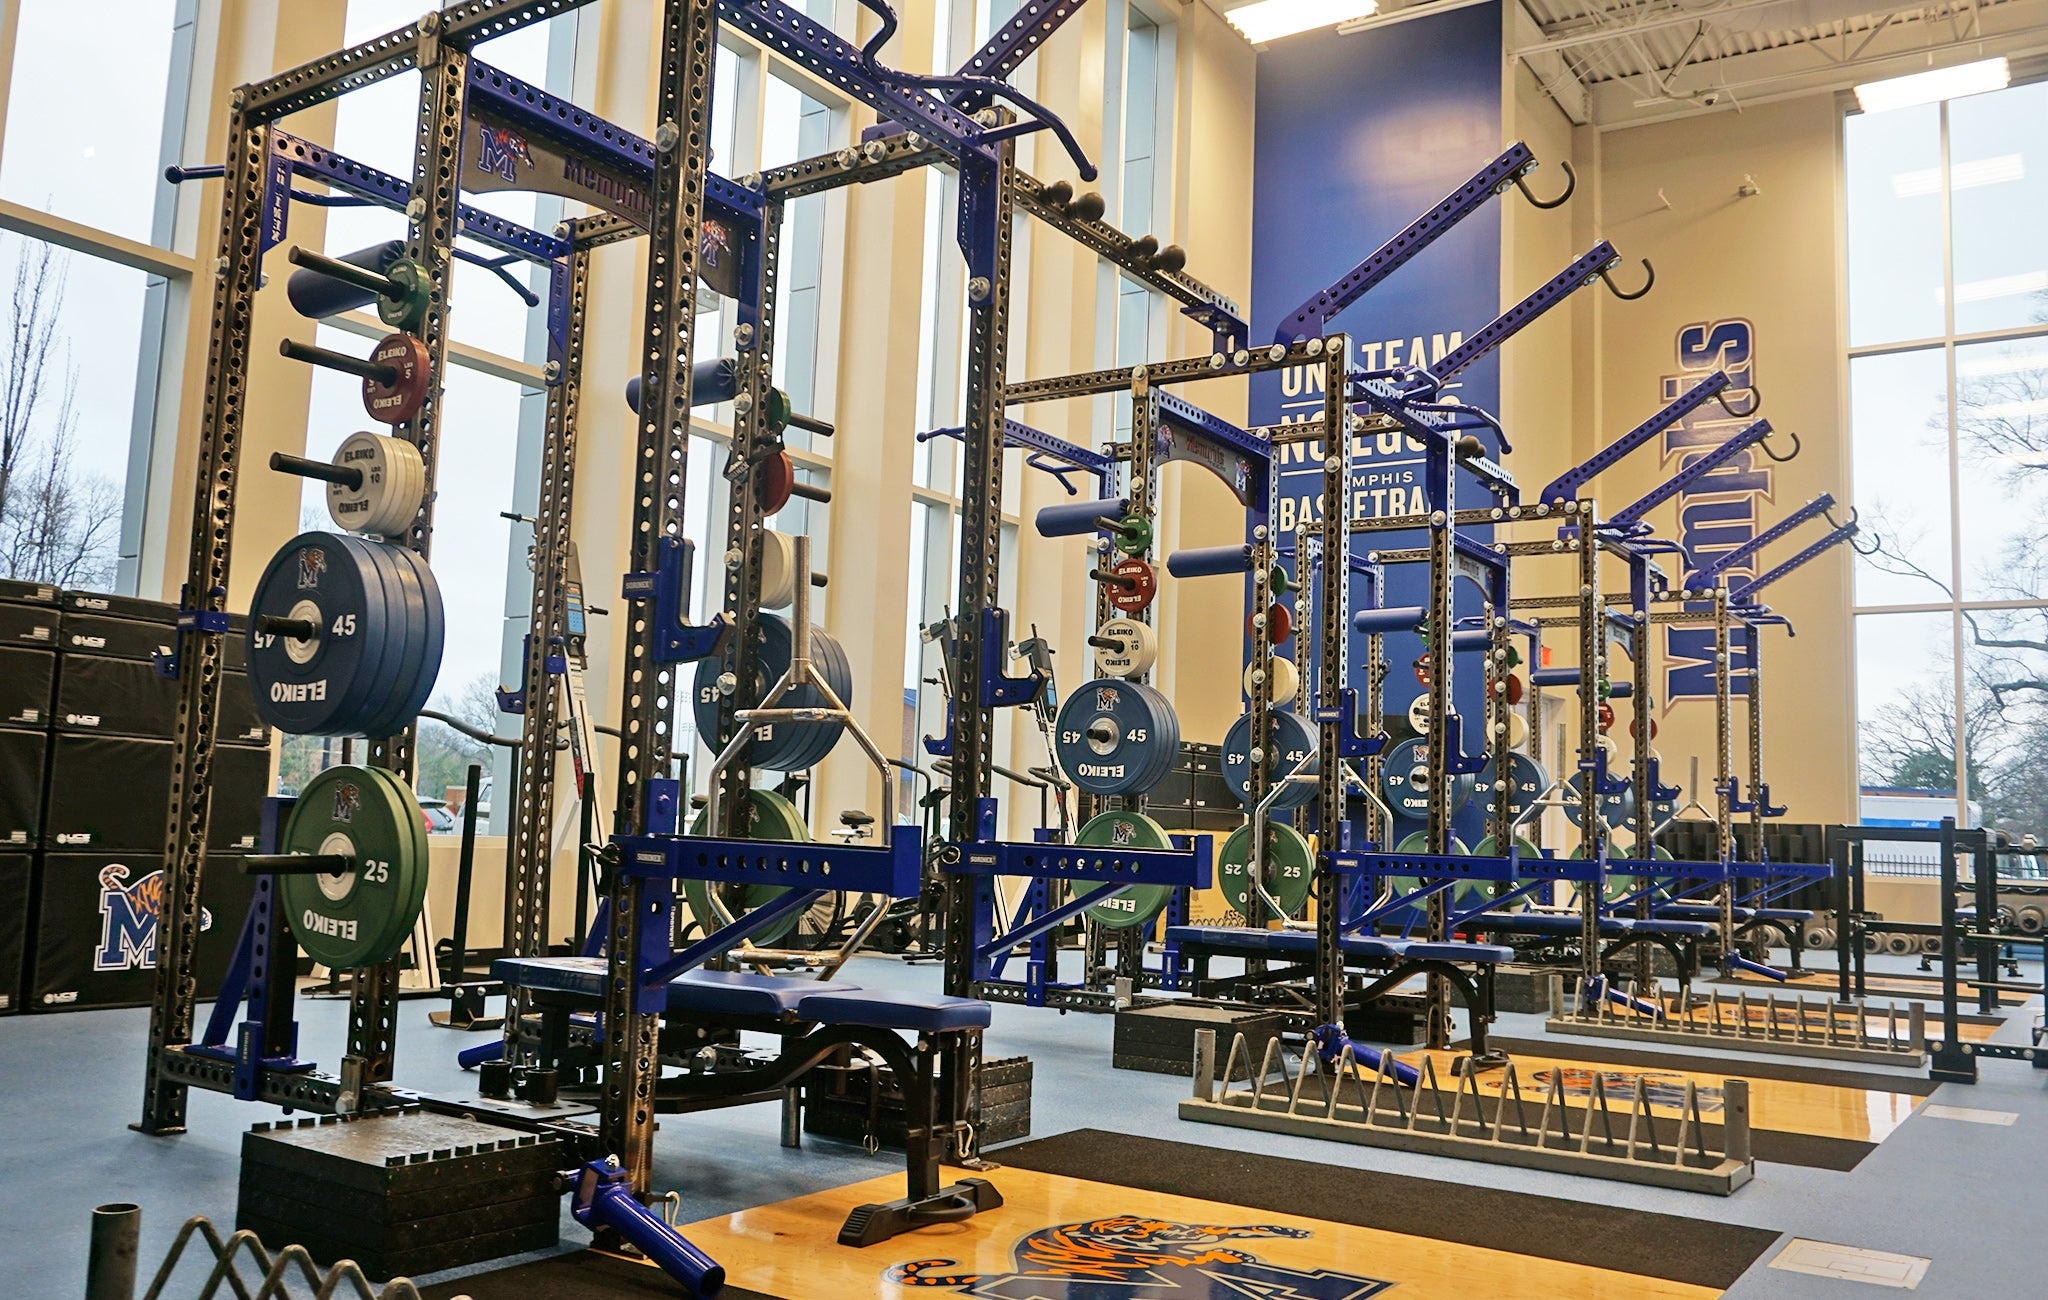 University of Memphis Basketball strength and conditioning